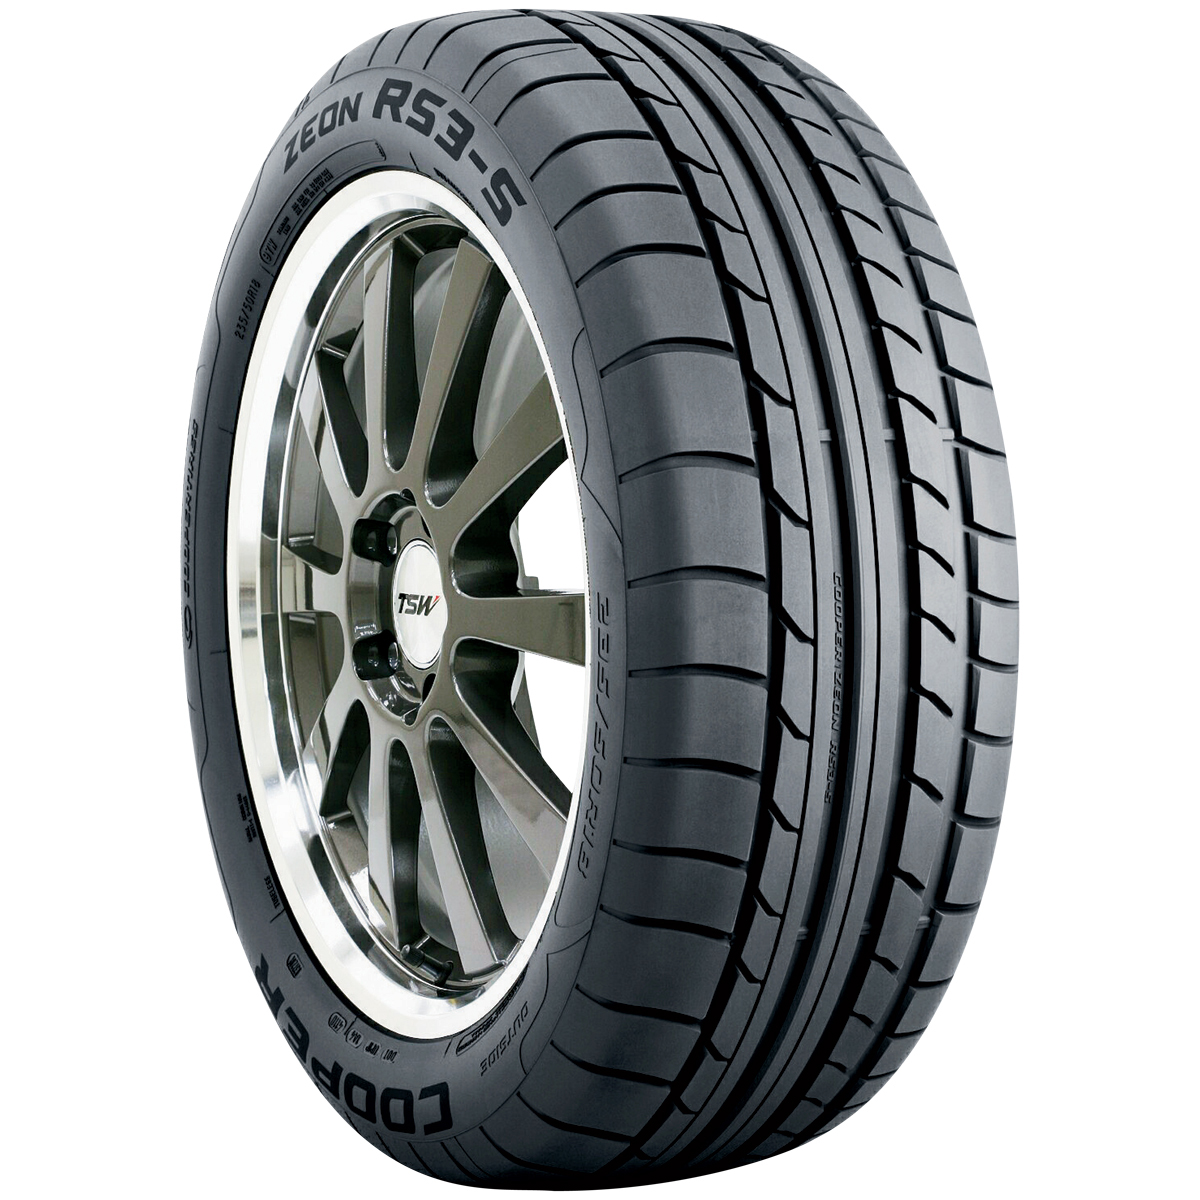 Zeon RS3-S - P325/30R19XL 105Y